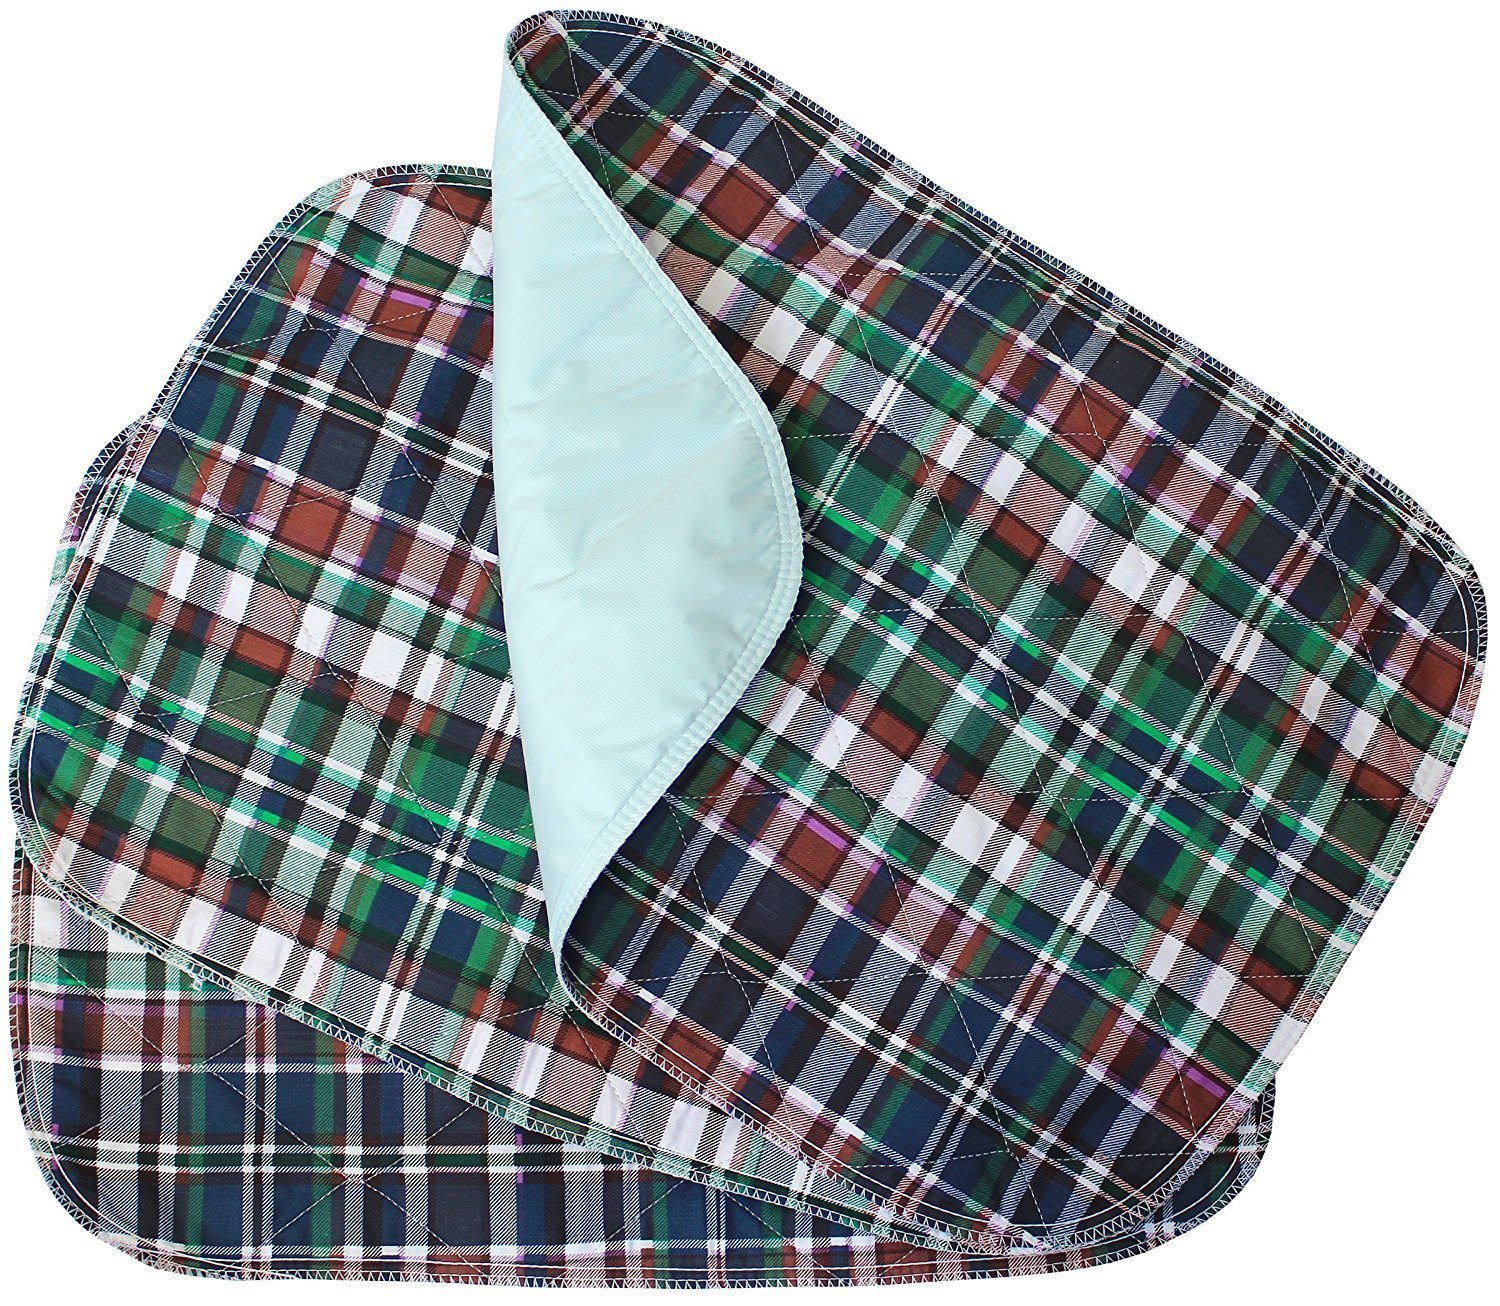 Platinum Care Pads - Plaid Small Washable Chair Pad Bed Pad/Small Reusable Incontinence Chair Underpad 17x24 - Perfect for Children and Adults Incontinence Protection (6)